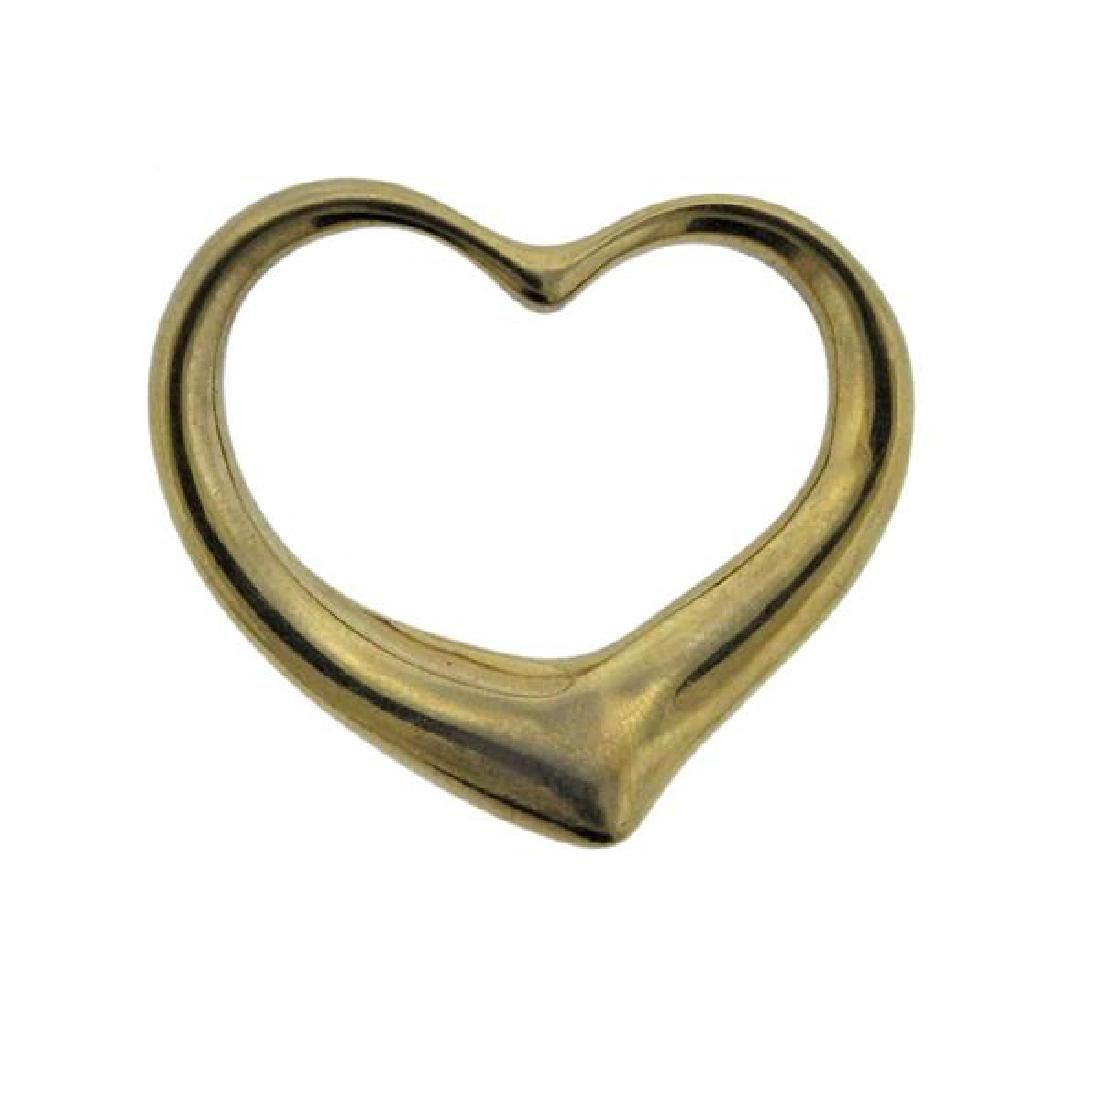 Tiffany & Co Elsa Peretti 18K Gold Open Heart